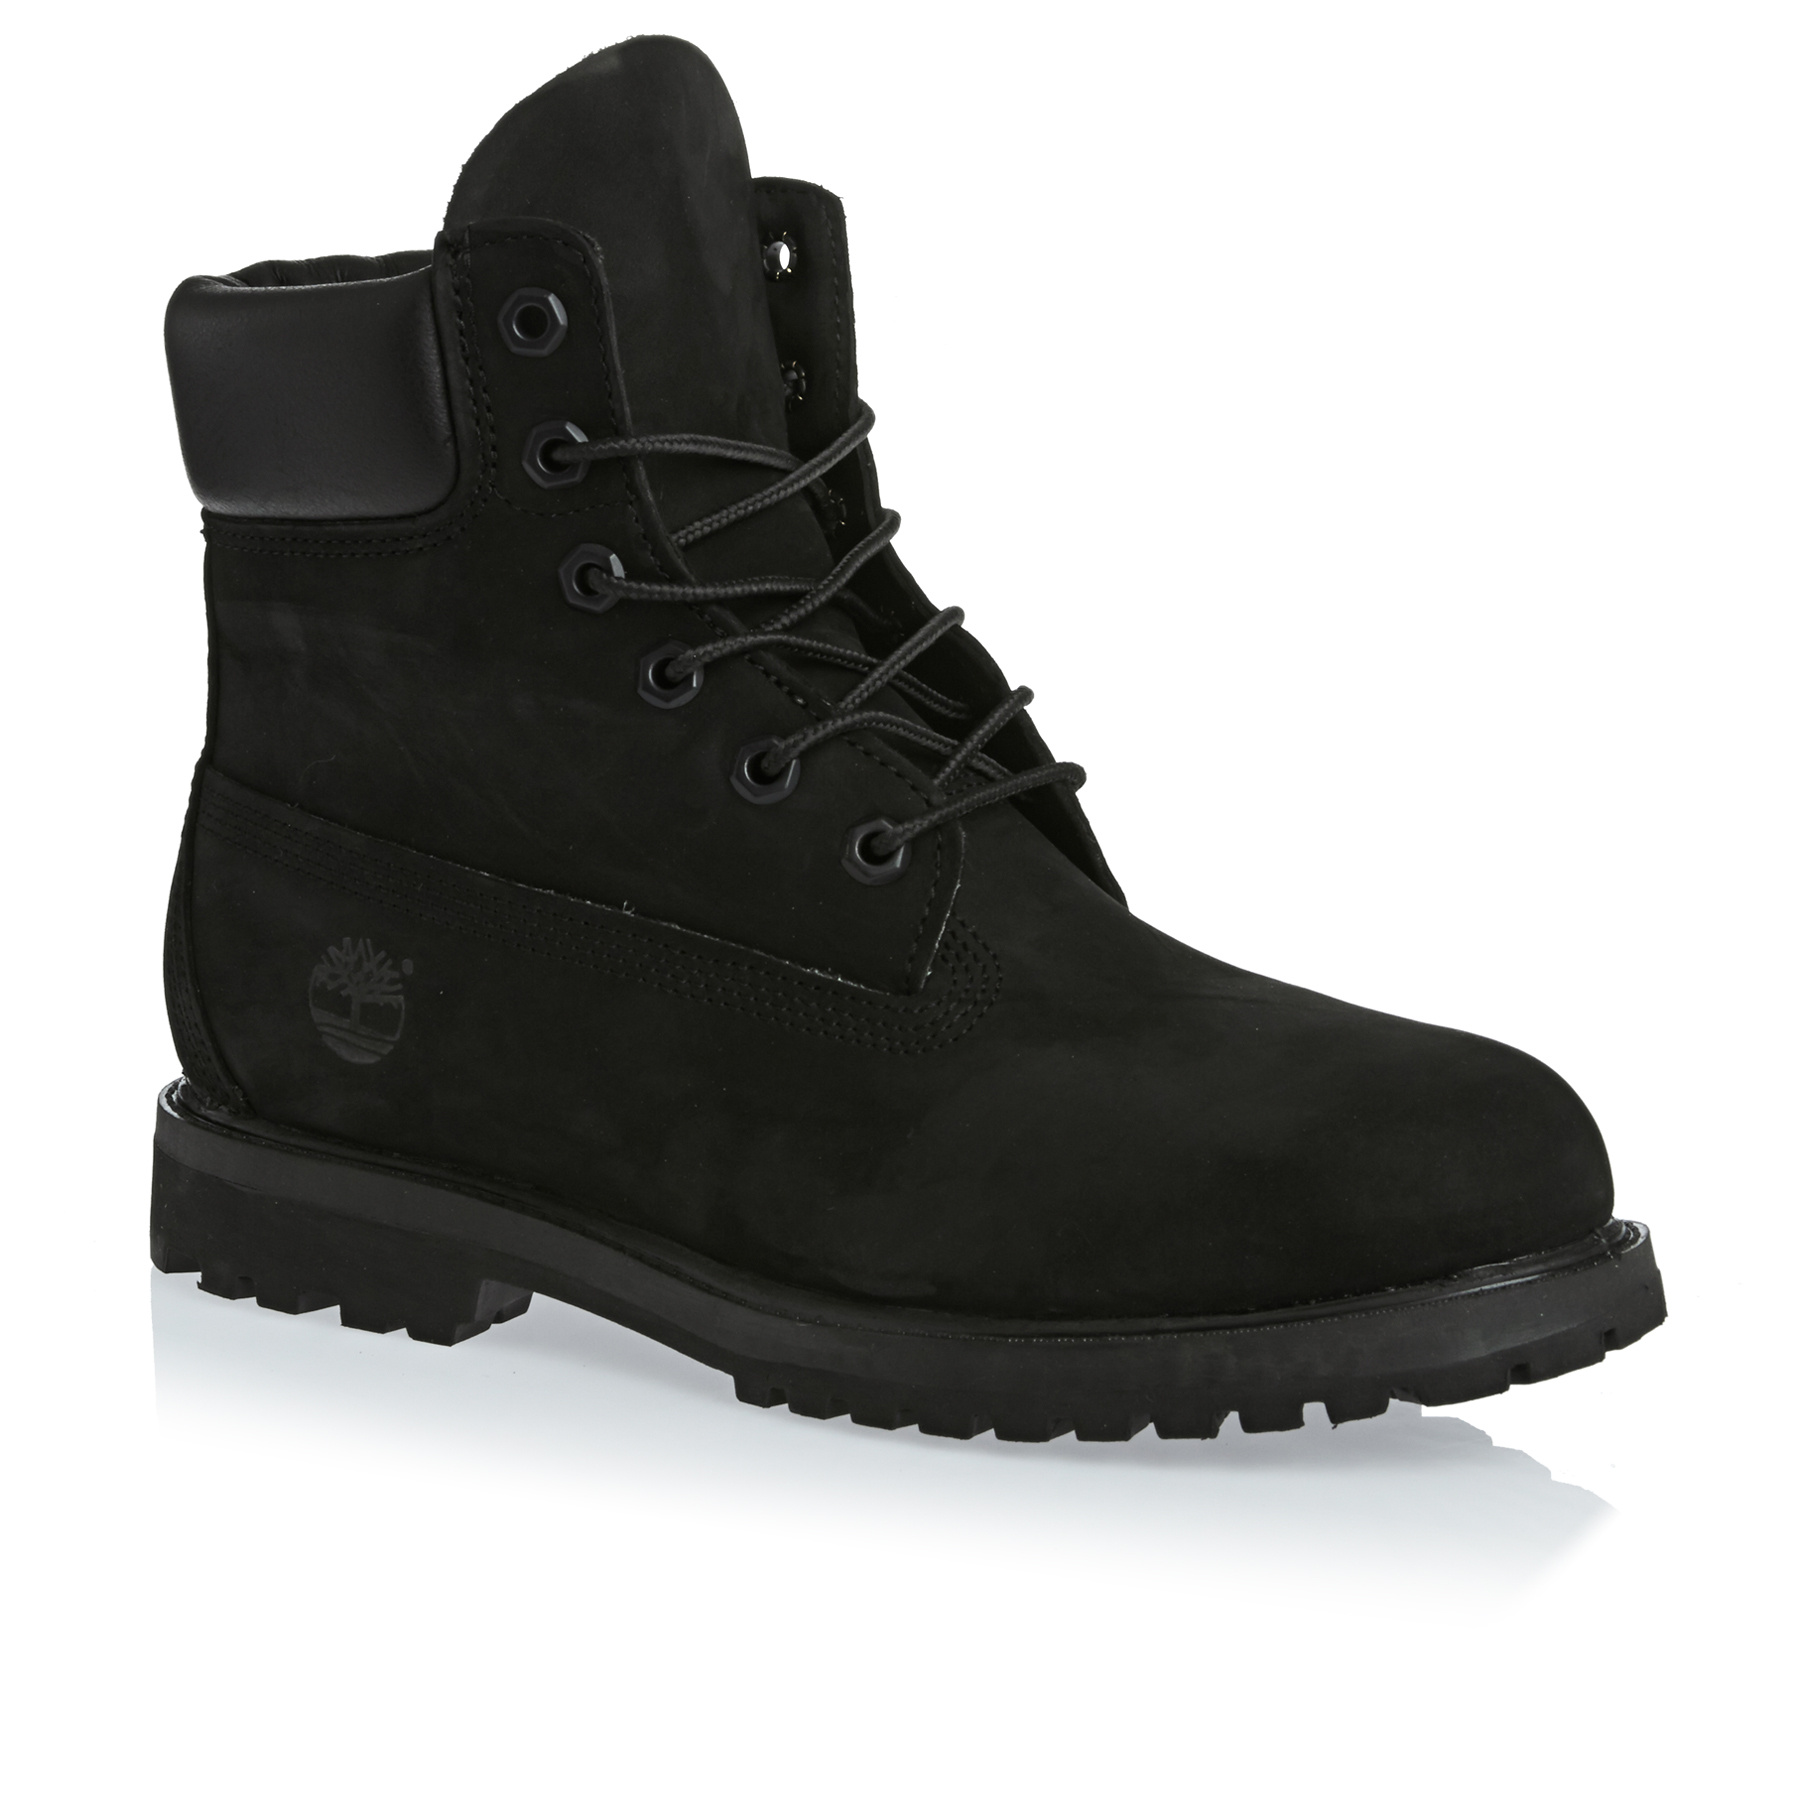 Timberland Clothing & Accessories | Free Delivery* at